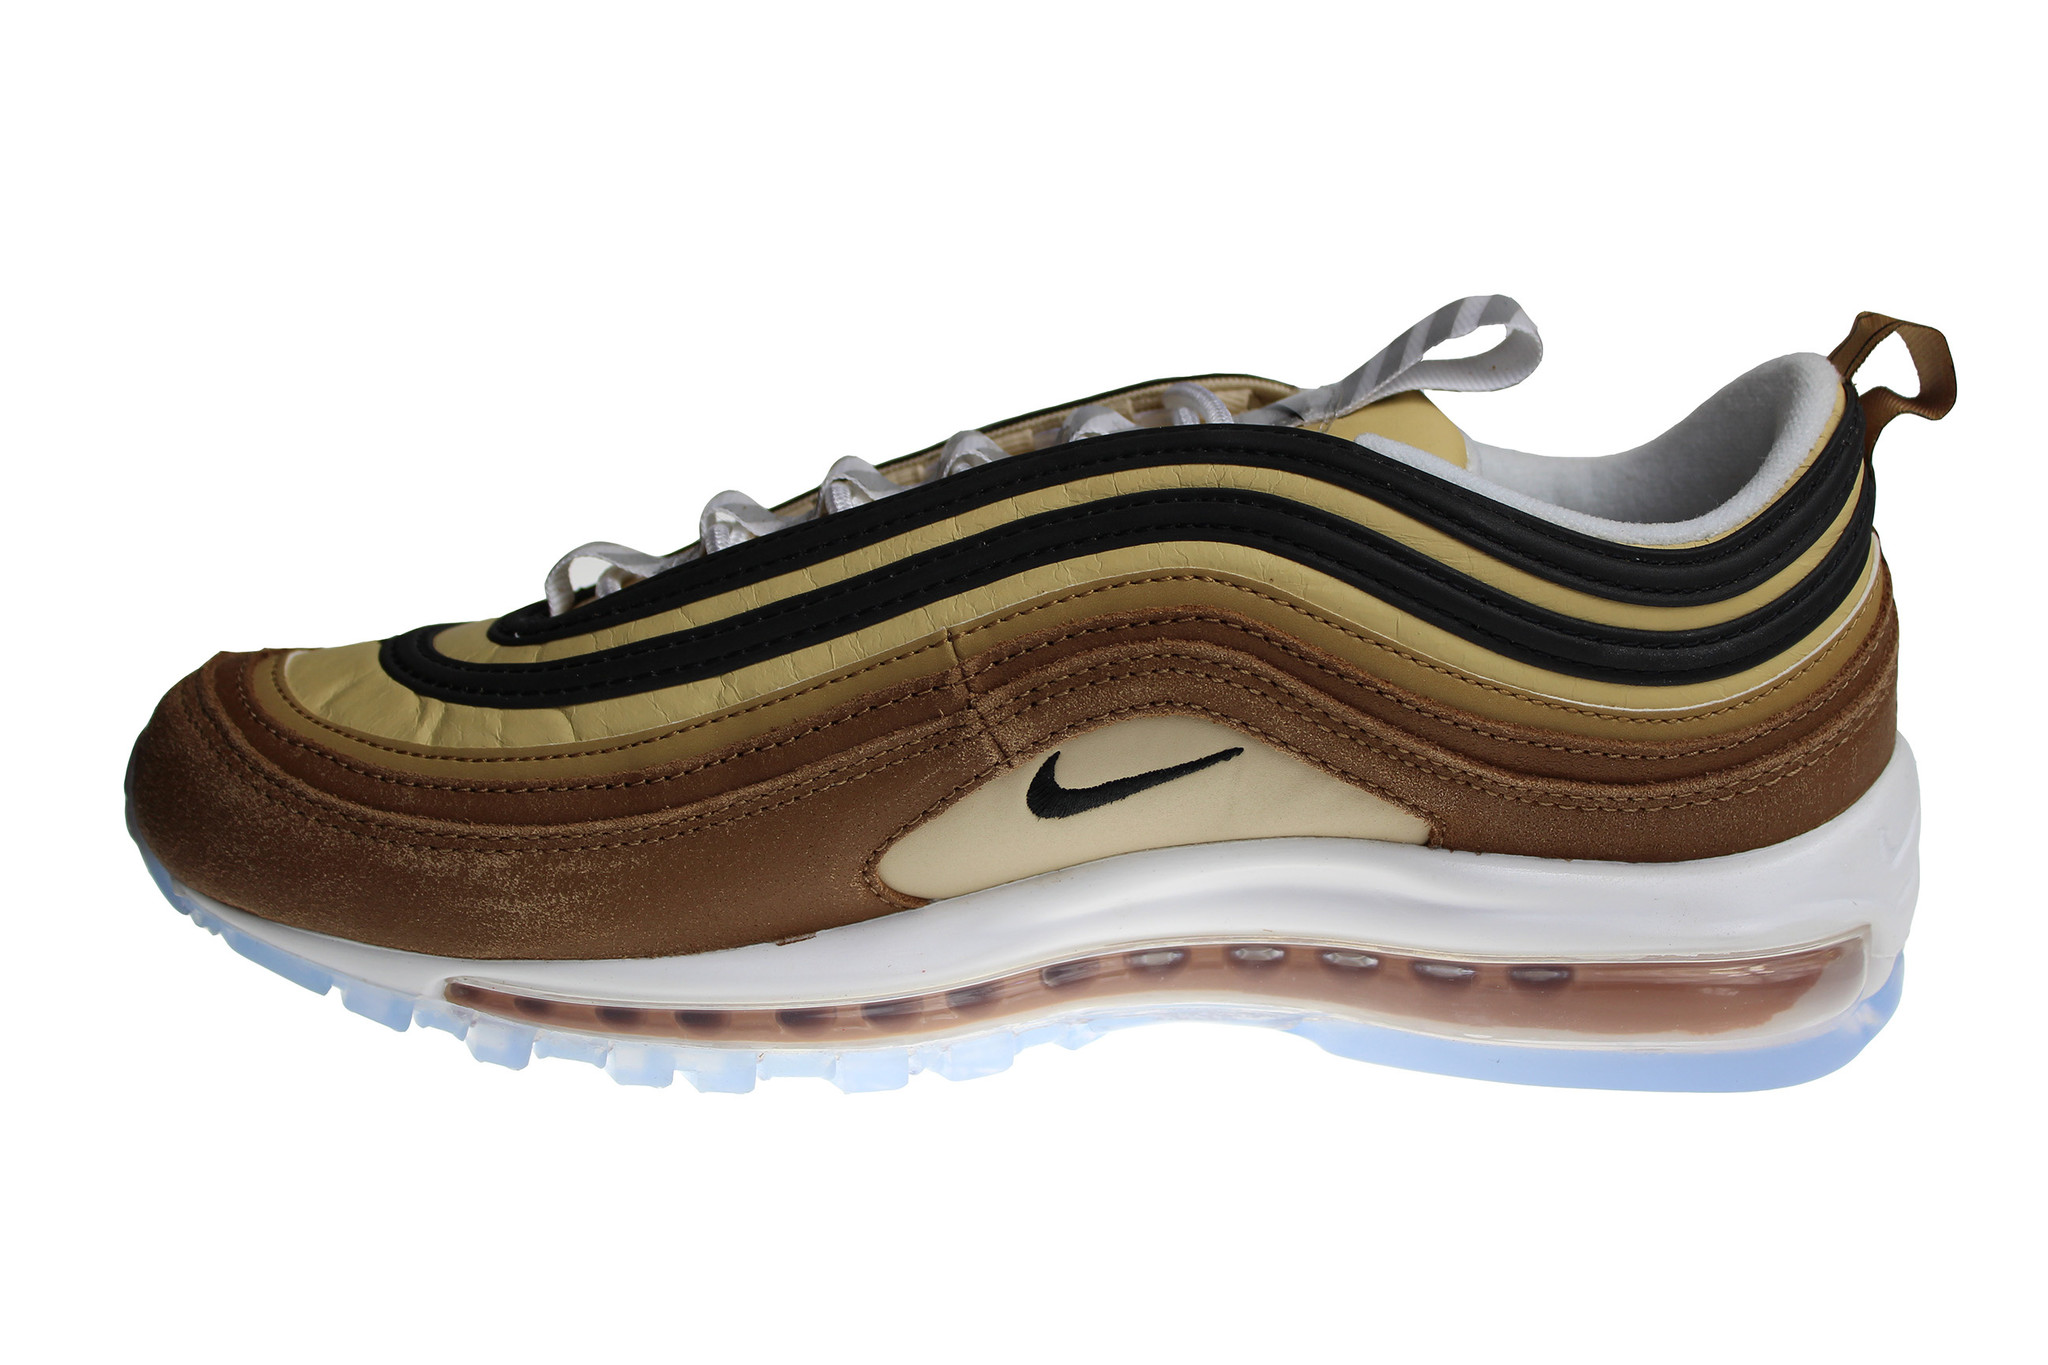 plus récent e860d 5fefc Nike Air Max 97 Brown/Beige/White/Turquoise 921826 201 Men's Sneakers